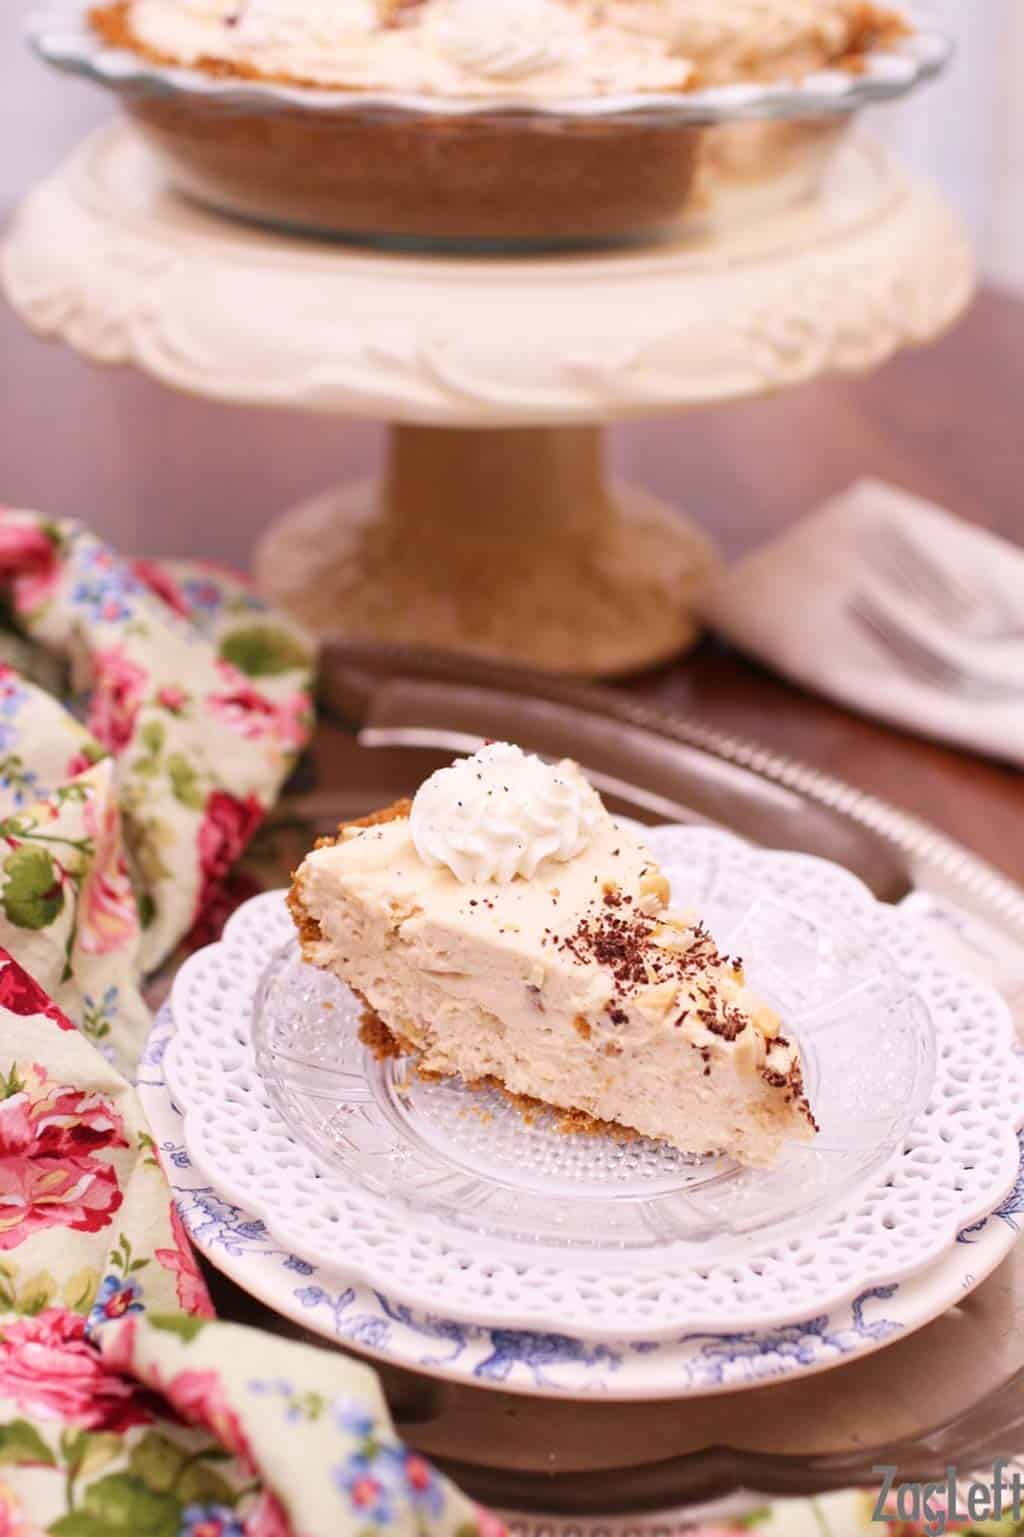 Rich, creamy and super fluffy Peanut Butter Marshmallow Cream Pie made with peanut butter and marshmallow fluff. Also known as a Fluffernutter Pie, this almost no-bake dessert is going to become one of your favorites! www.zagleft.com